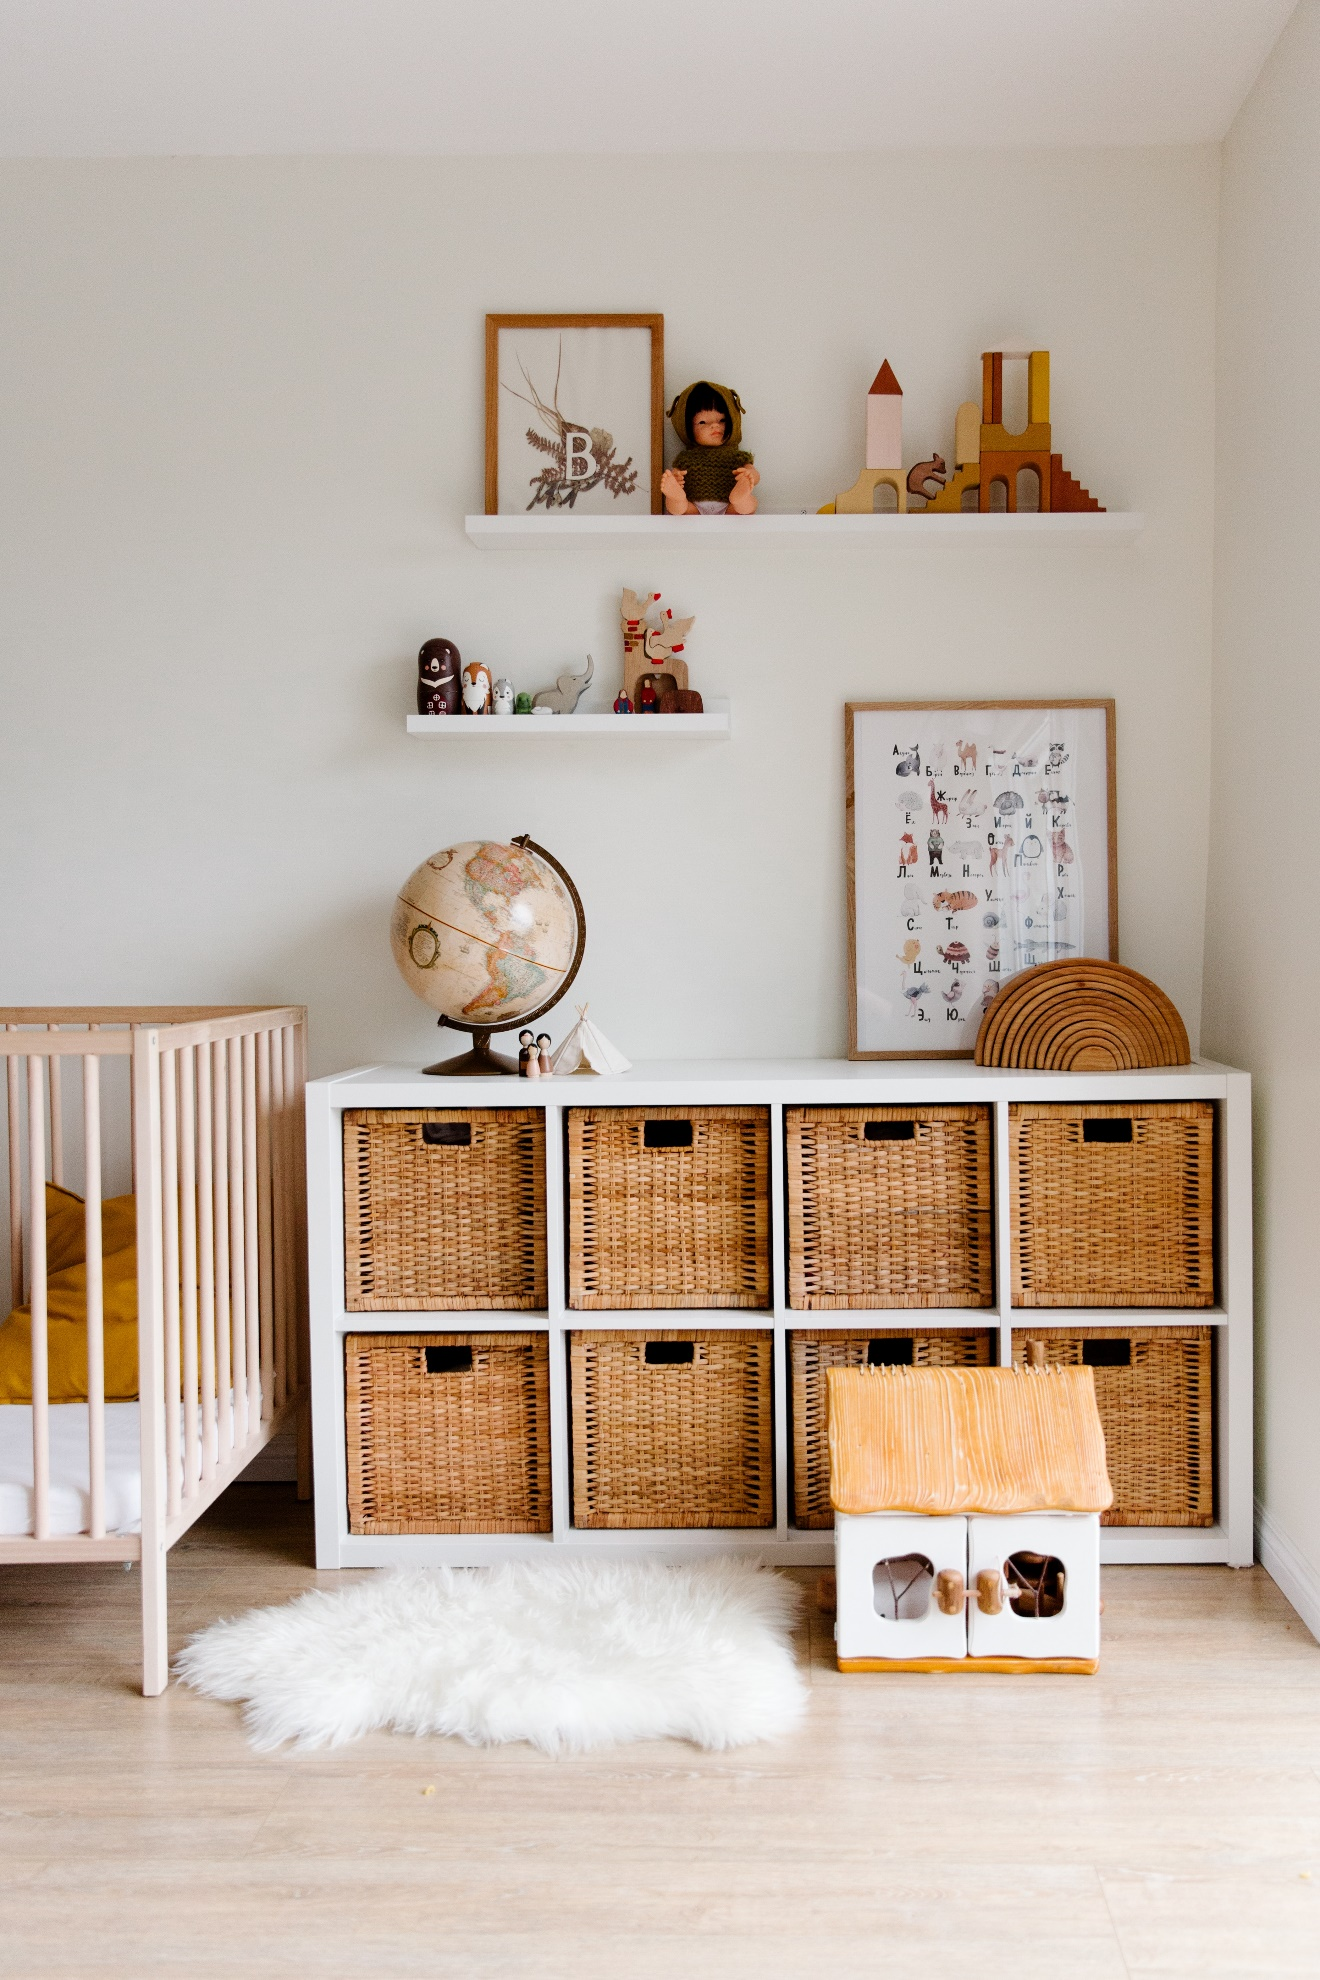 children's room with shelving and storage solution